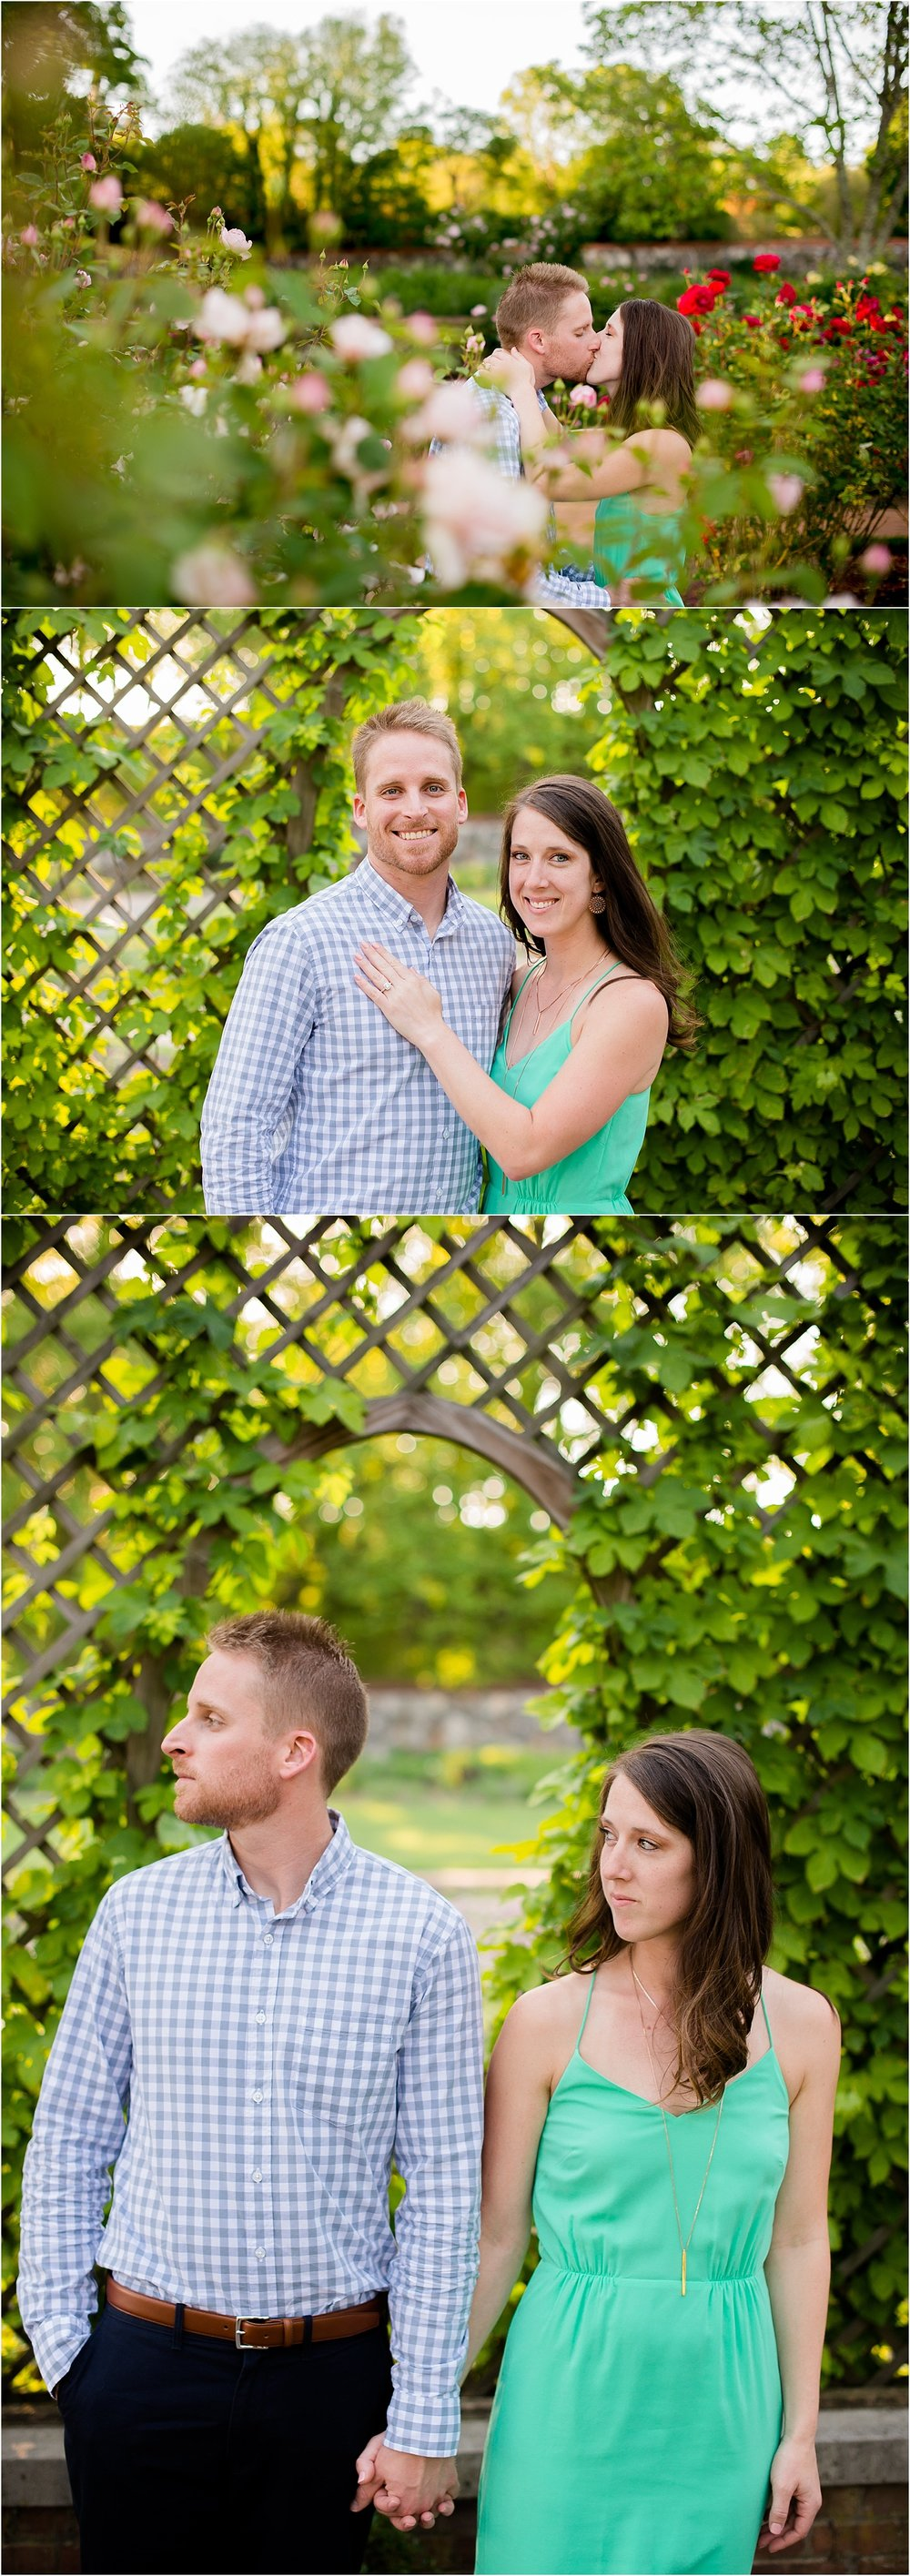 Romantic-Fun-Biltmore-Engagement-Session-Asheville-North-Carolina-New-England